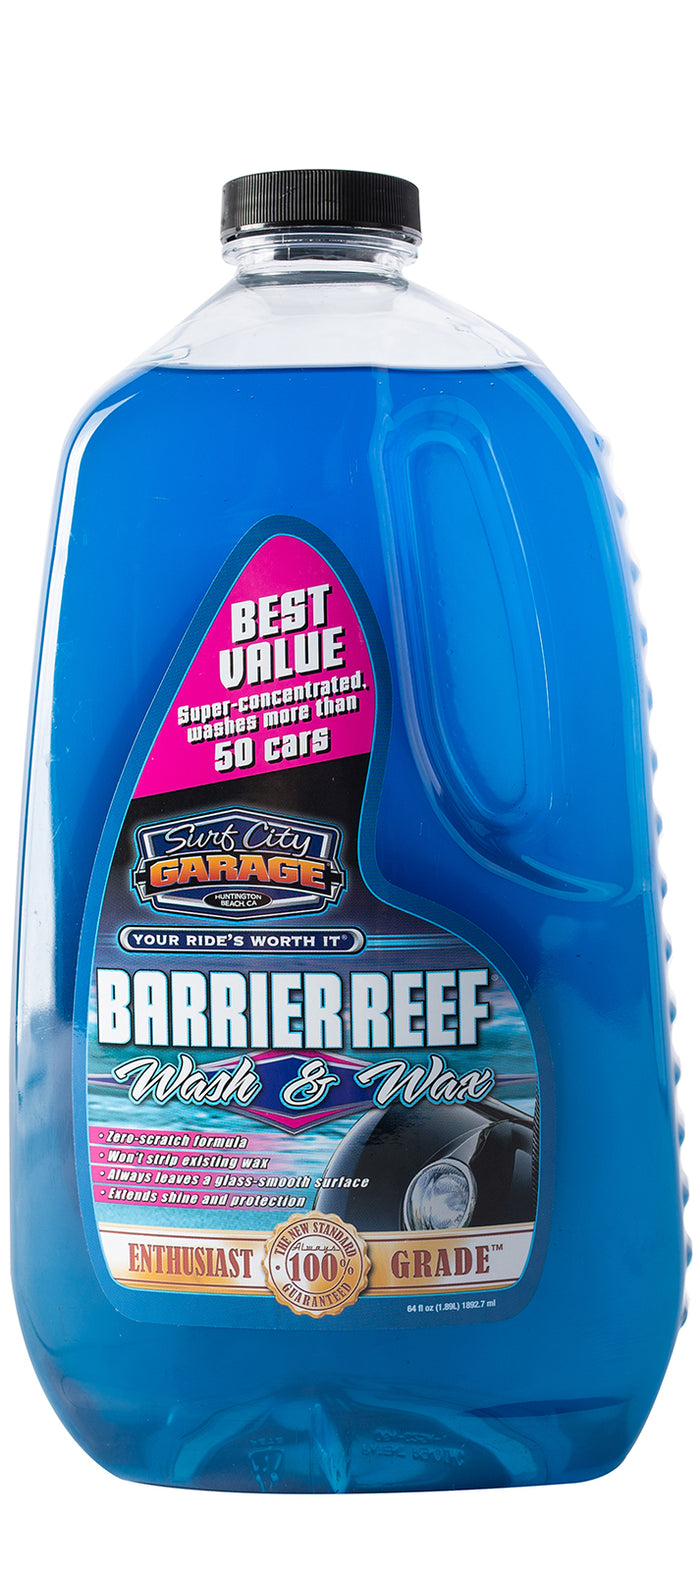 Barrier Reef® Wash & Wax